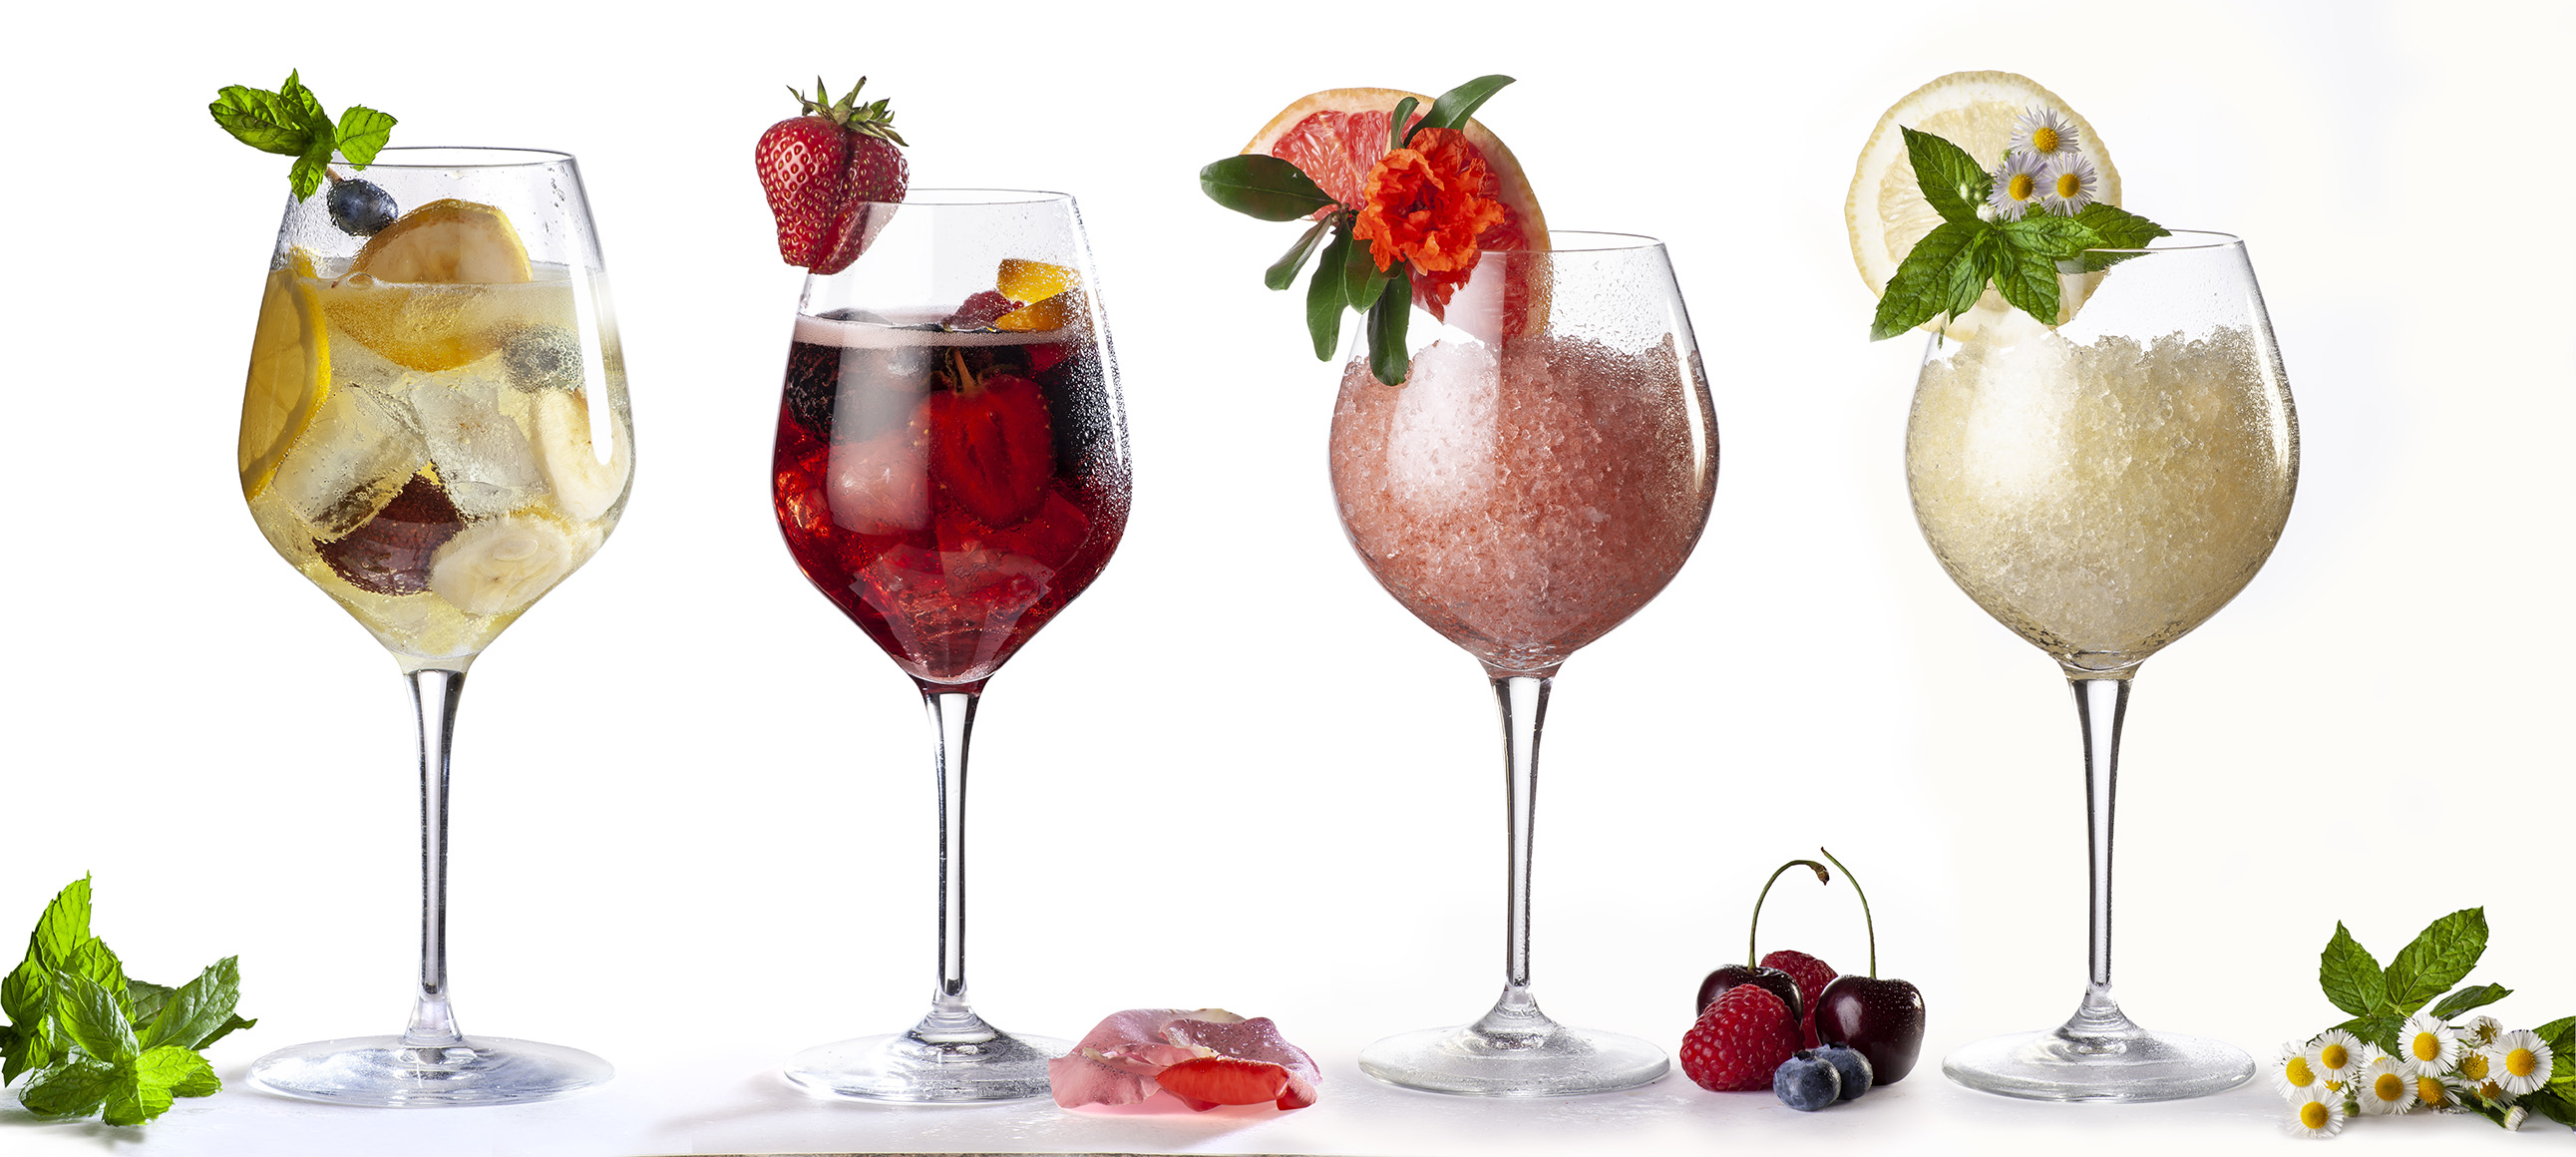 cocktail_fotografia_food_vergnano